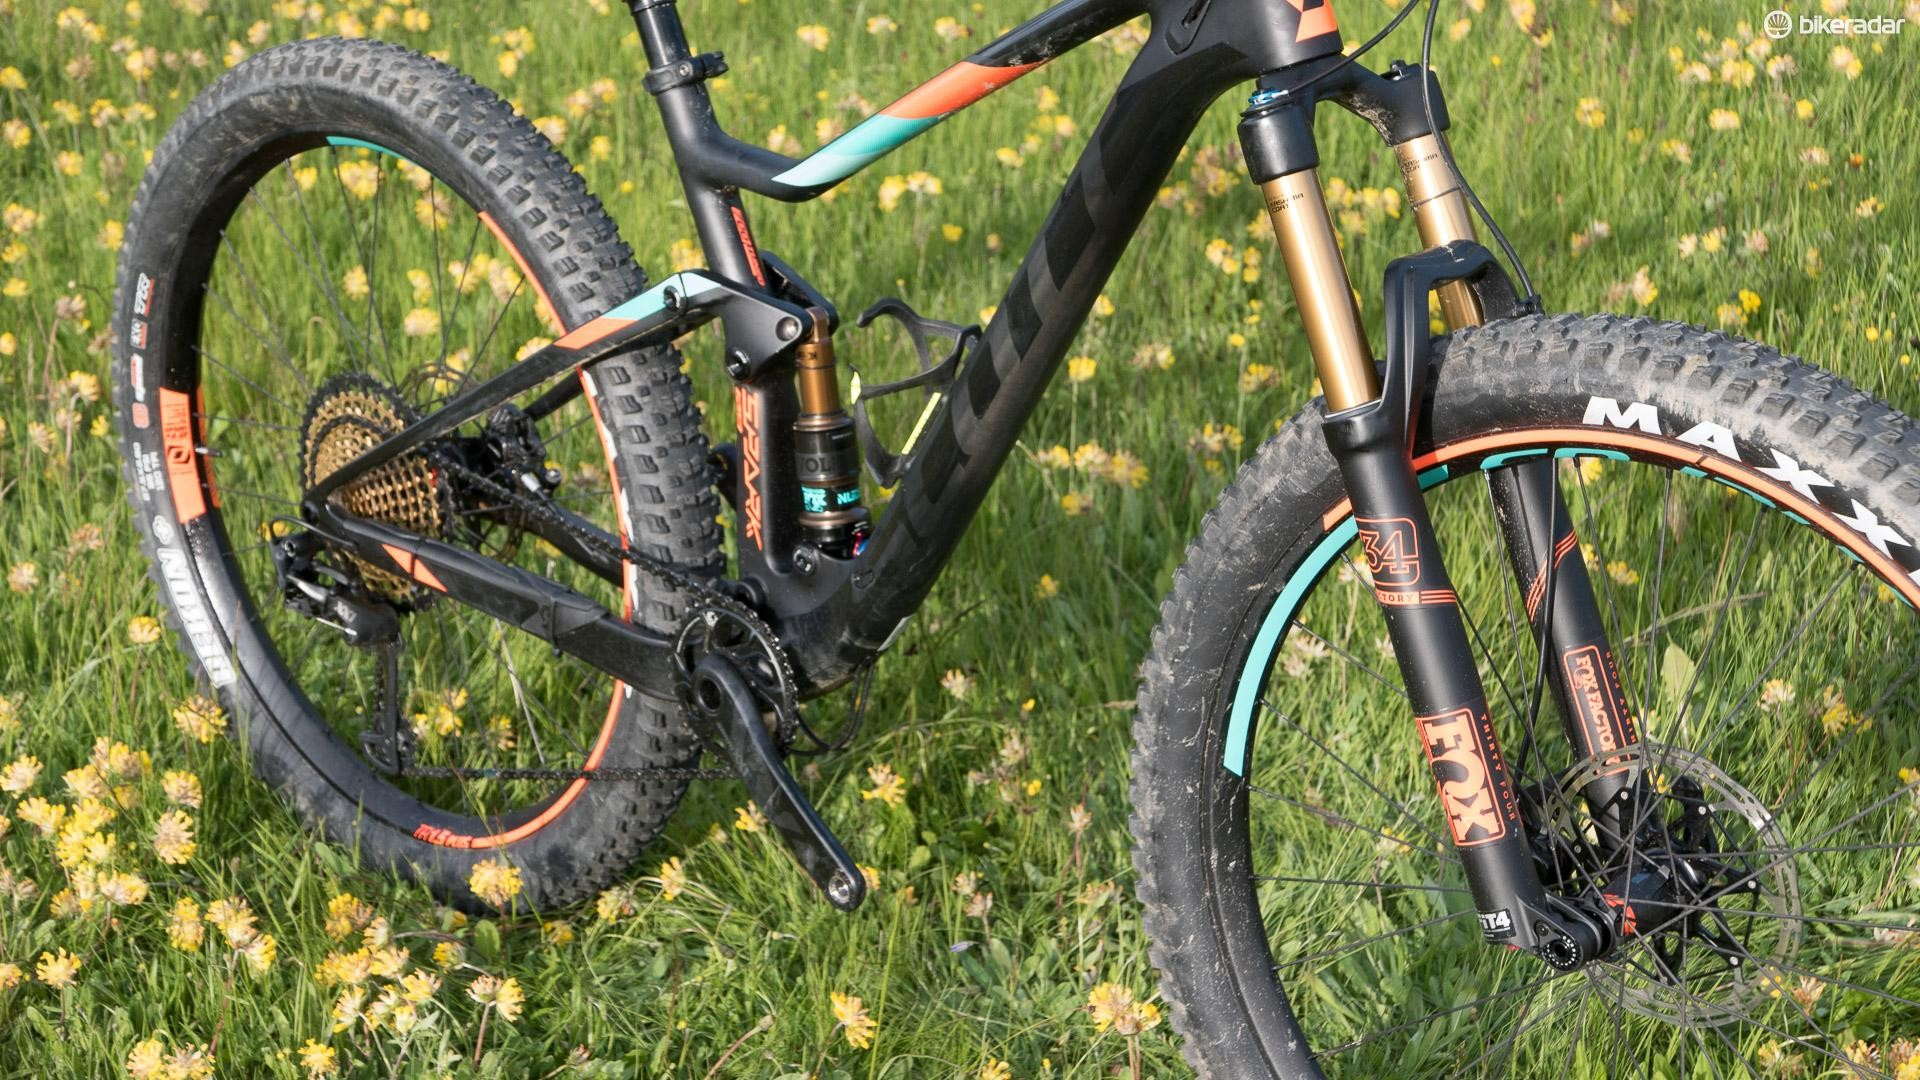 While it shares the same frame layout and suspension design as the rest of the Spark range, this bike is built from the ground up to use mid-fat rubber